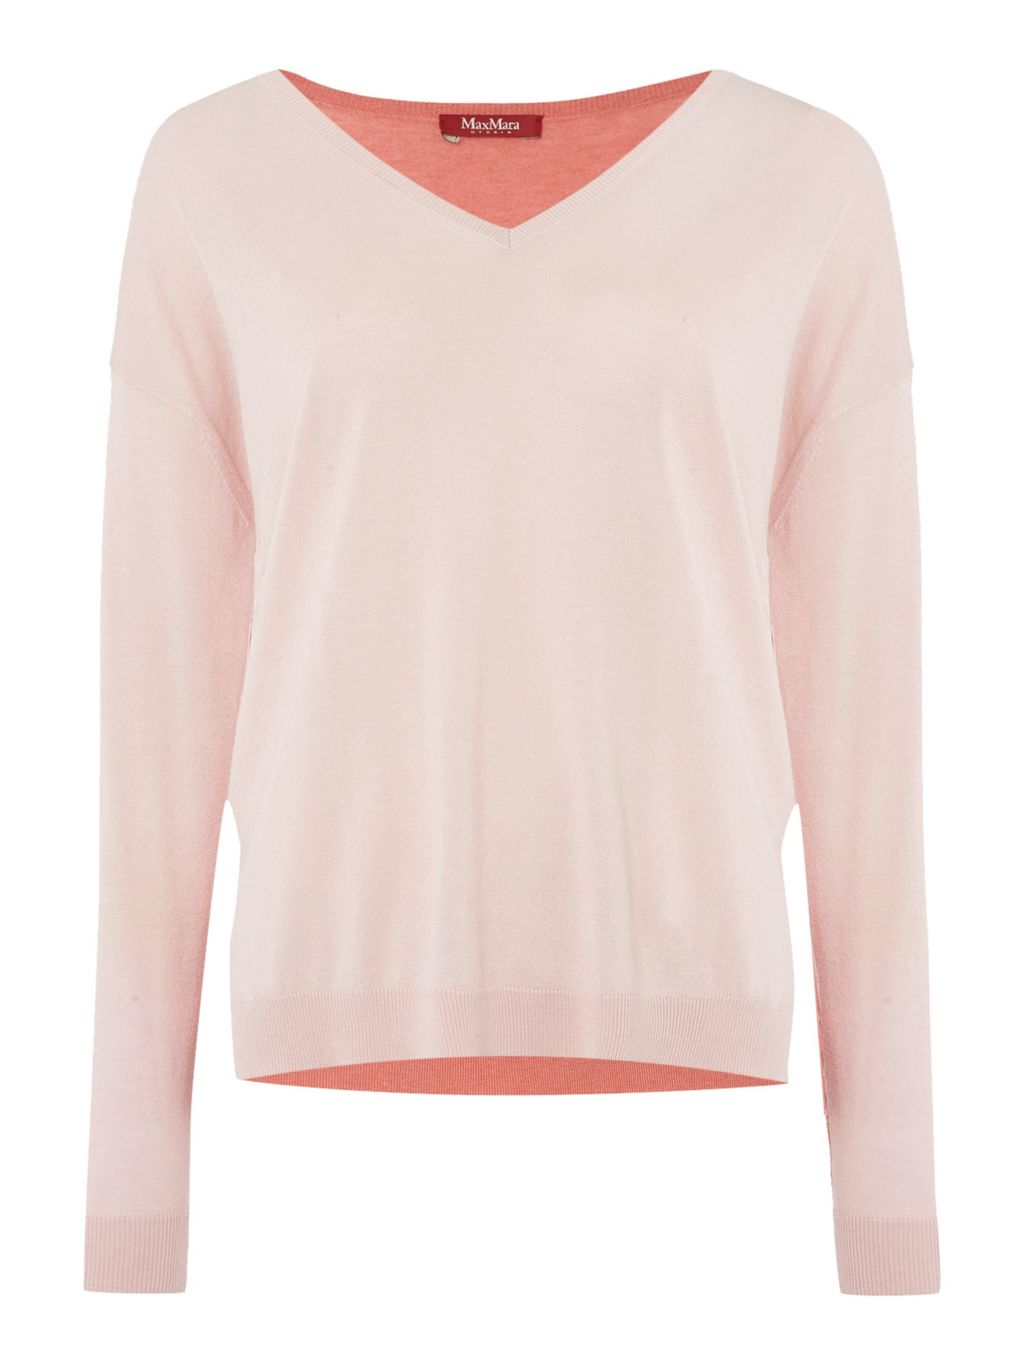 Tenuta Contrasting Colour V Neck Silk Mix Jumper, Pink - neckline: v-neck; pattern: plain; style: standard; predominant colour: blush; occasions: casual, creative work; length: standard; fibres: wool - mix; fit: standard fit; sleeve length: long sleeve; sleeve style: standard; texture group: knits/crochet; pattern type: knitted - fine stitch; season: a/w 2015; wardrobe: basic